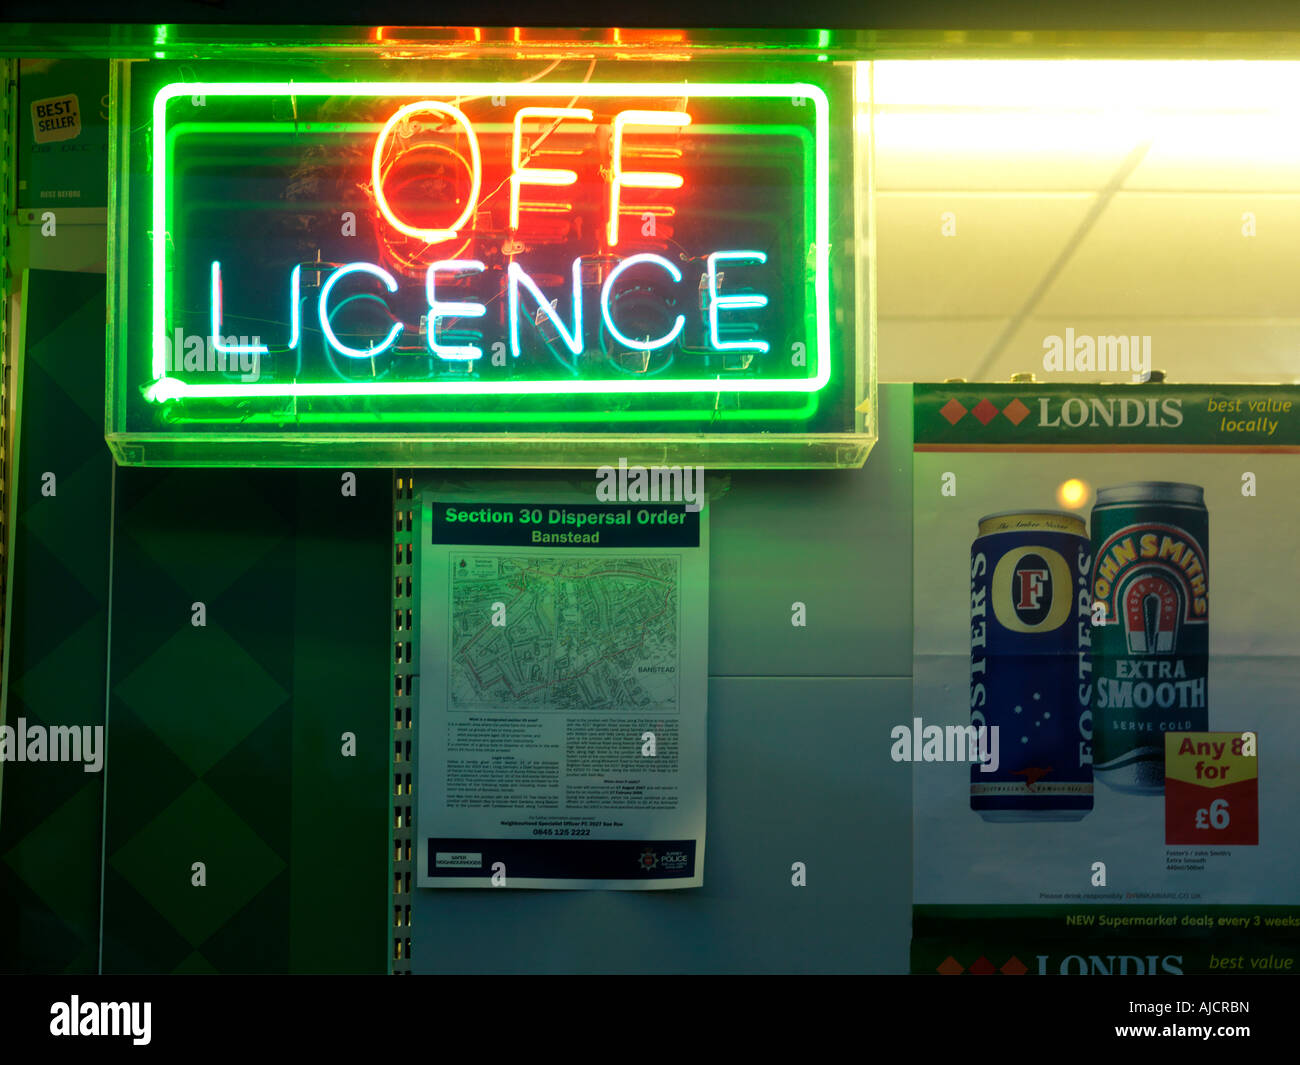 Off Licence Nork Surrey Displaying a Police Dispersal Order - Stock Image